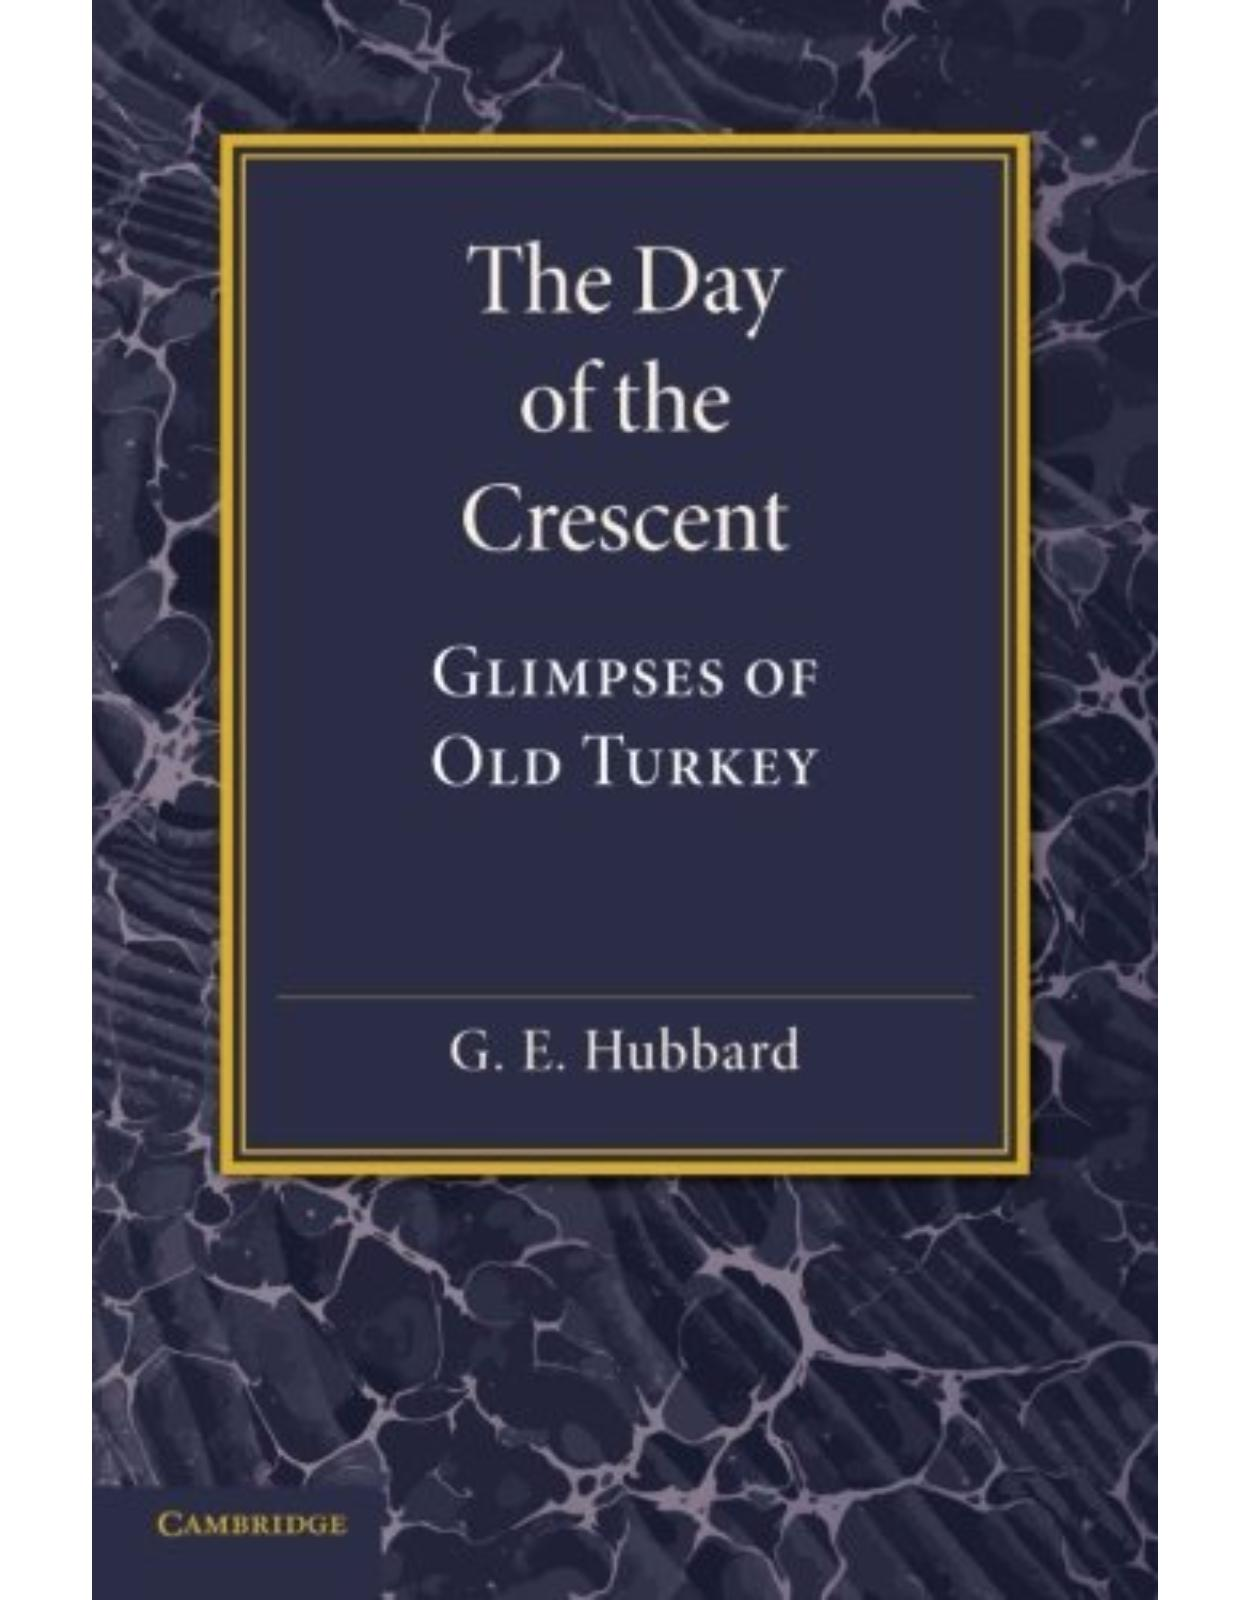 The Day of the Crescent: Glimpses of Old Turkey